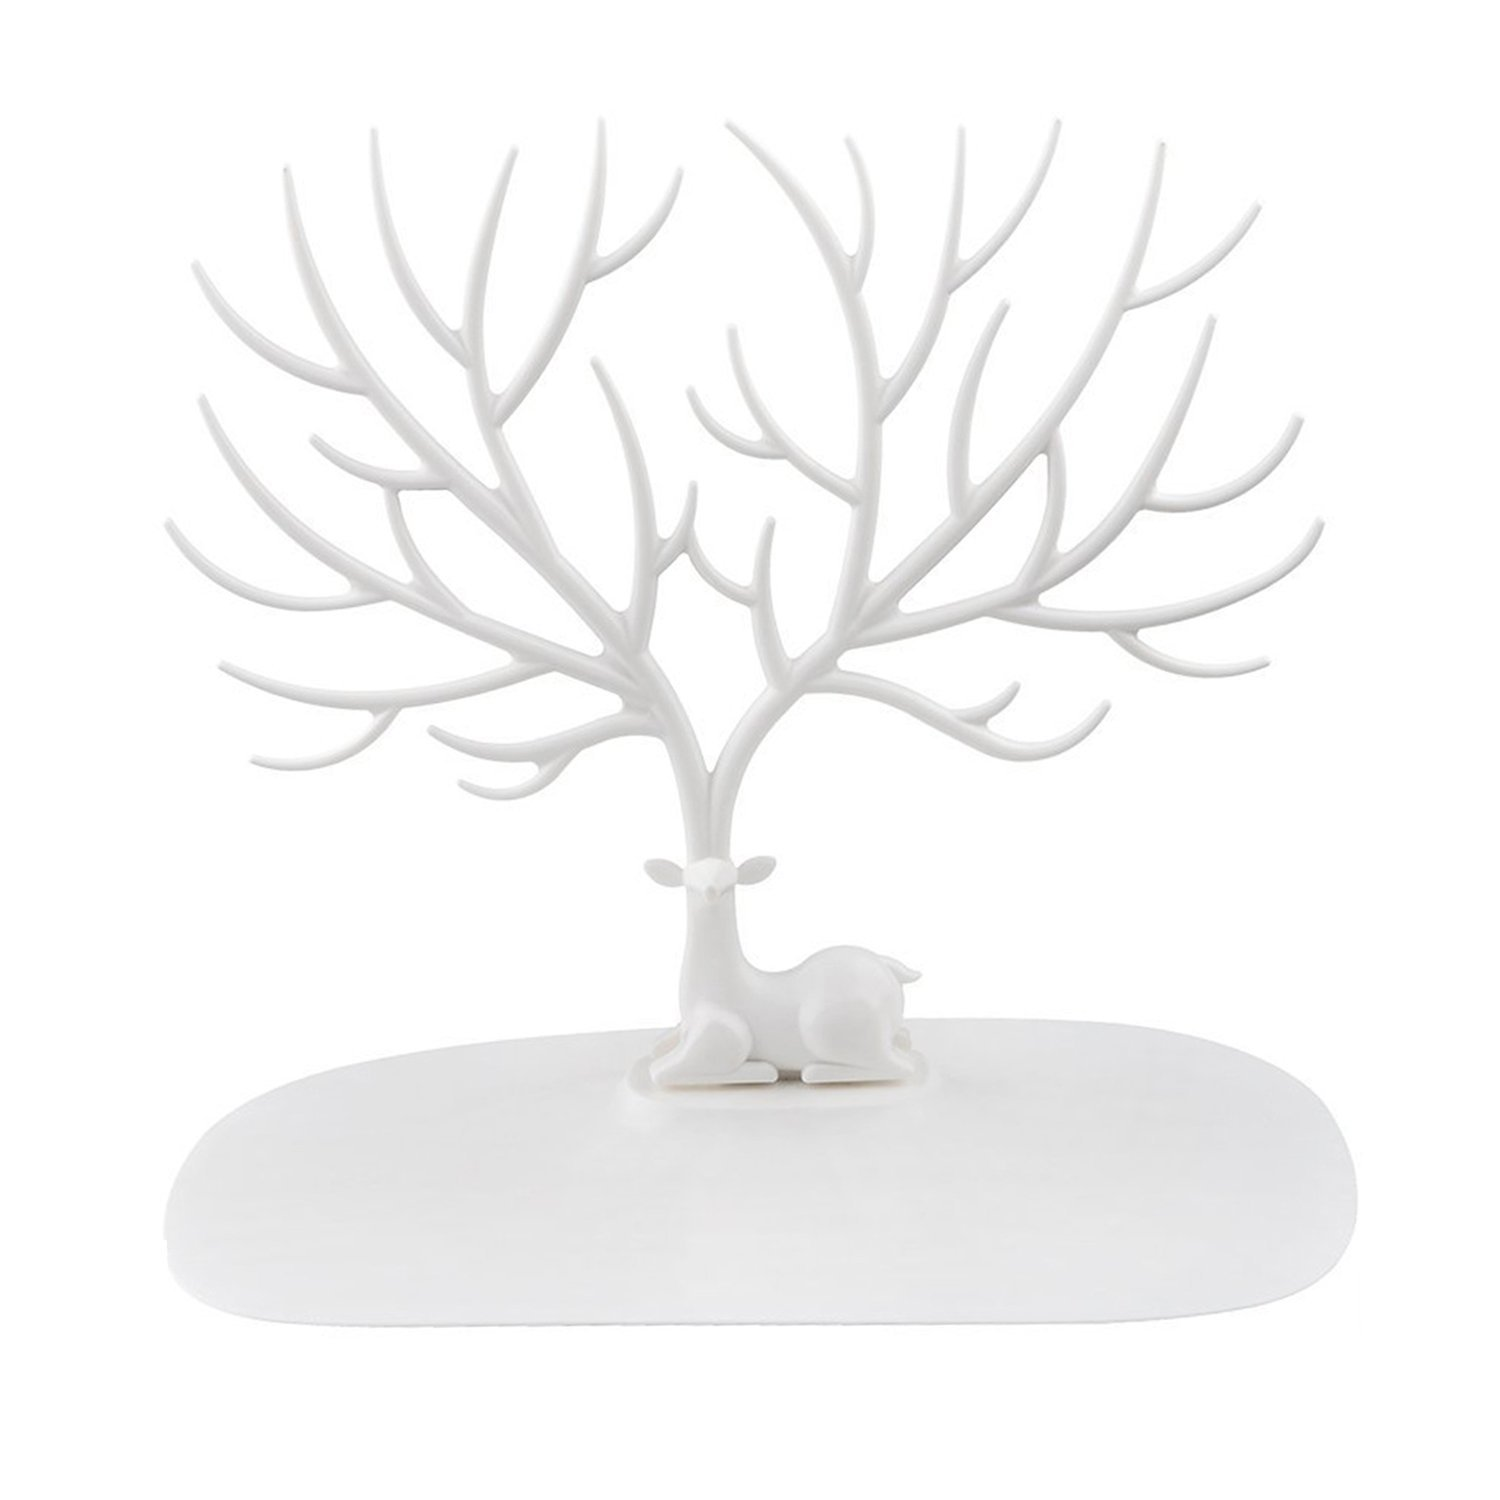 Jewelry Organizer Stand Display Tower, Earring Bracelet Ring Necklace brooches Holder Jewelry Rack – ABS Material Deer Tree-White